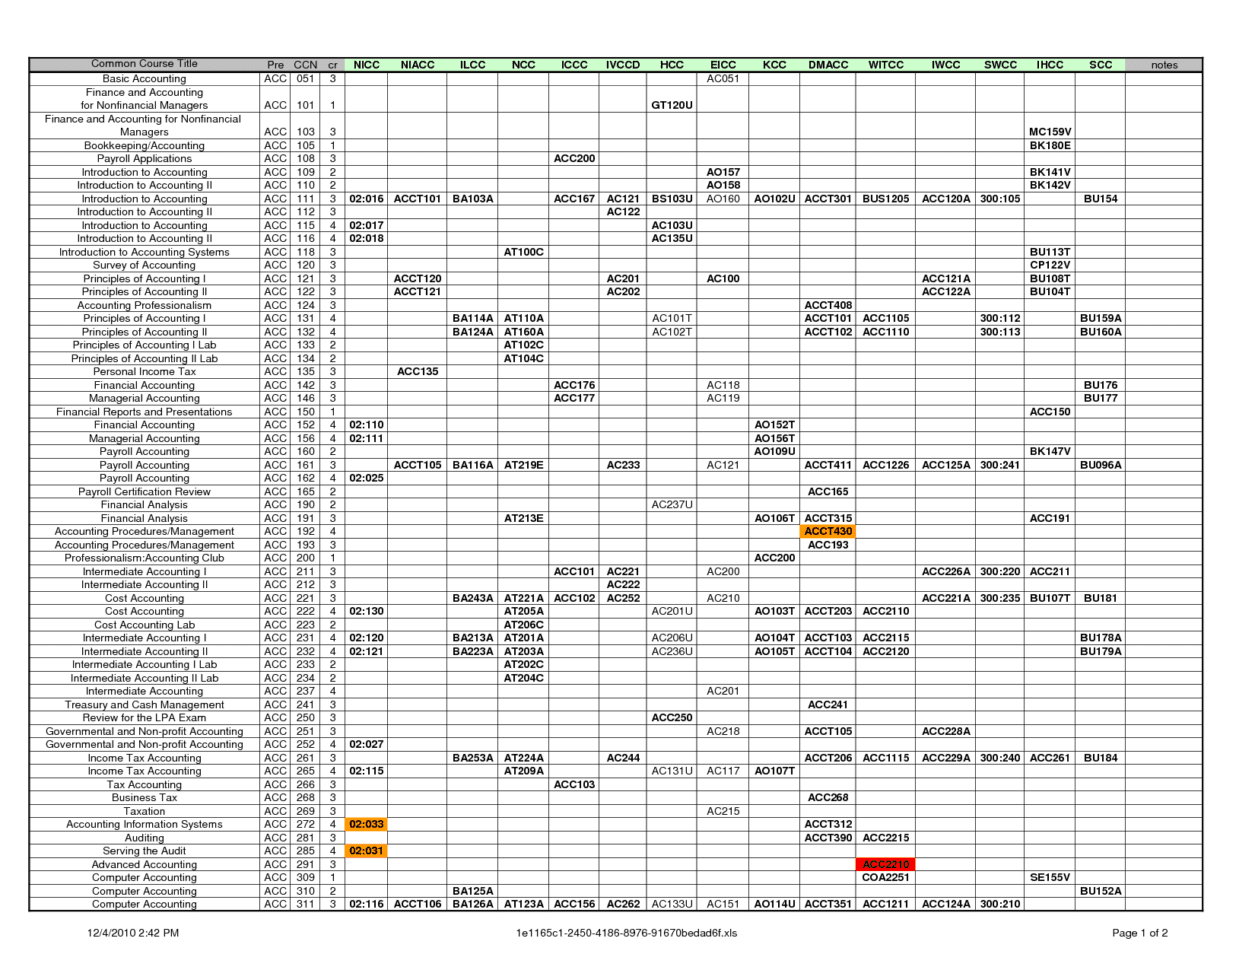 Bookkeeping Spreadsheet Template Simple Accounting Spreadsheet Template Simple Accounting Spreadsheet Bookkeeping Templates For Self Employed Monthly Bookkeeping Spreadsheet Free Excel Bookkeeping Spreadsheet Spreadsheets For Small Business Bookkeeping  Simple Accounting Spreadsheet Business Accounting Spreadsheet Template Spreadsheet Templates for Busines